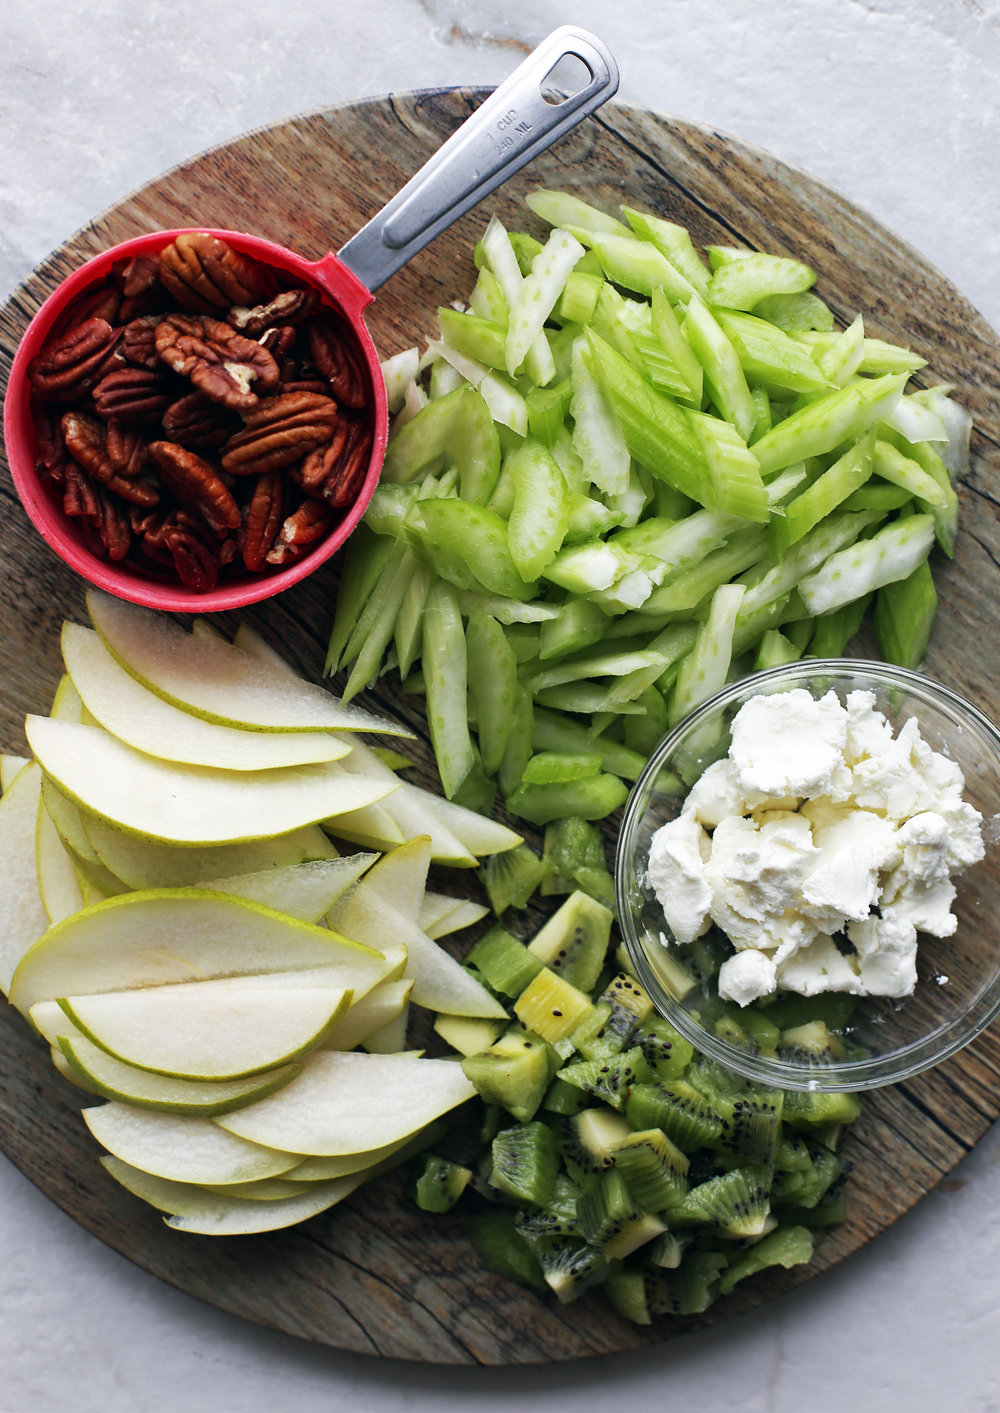 winter-green-salad-ingredients-.jpg